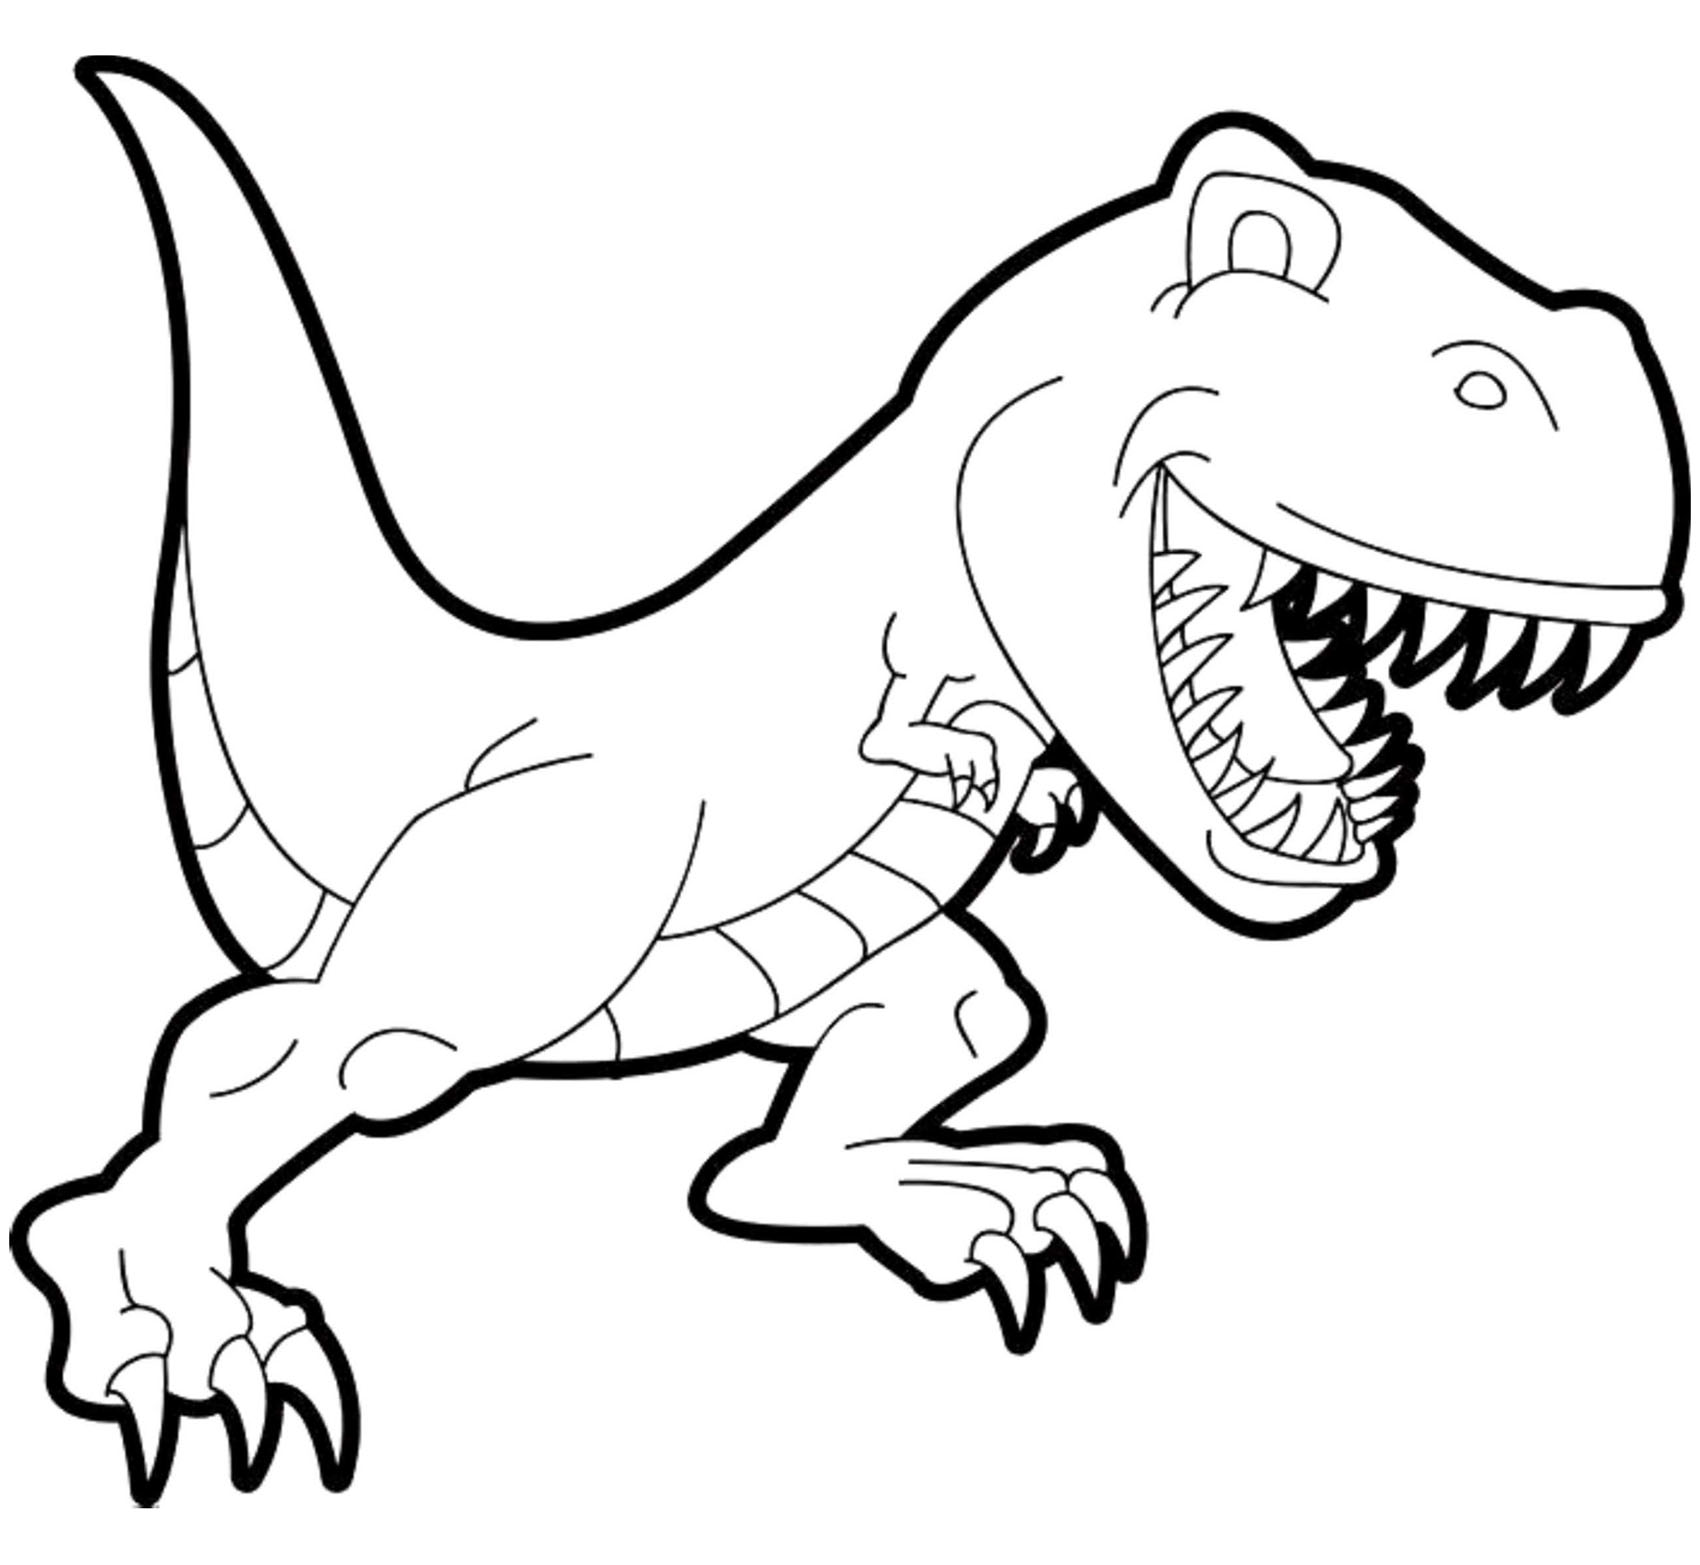 dinosaur coloring pages for kids coloring pages from the animated tv series dinosaur train kids coloring dinosaur pages for